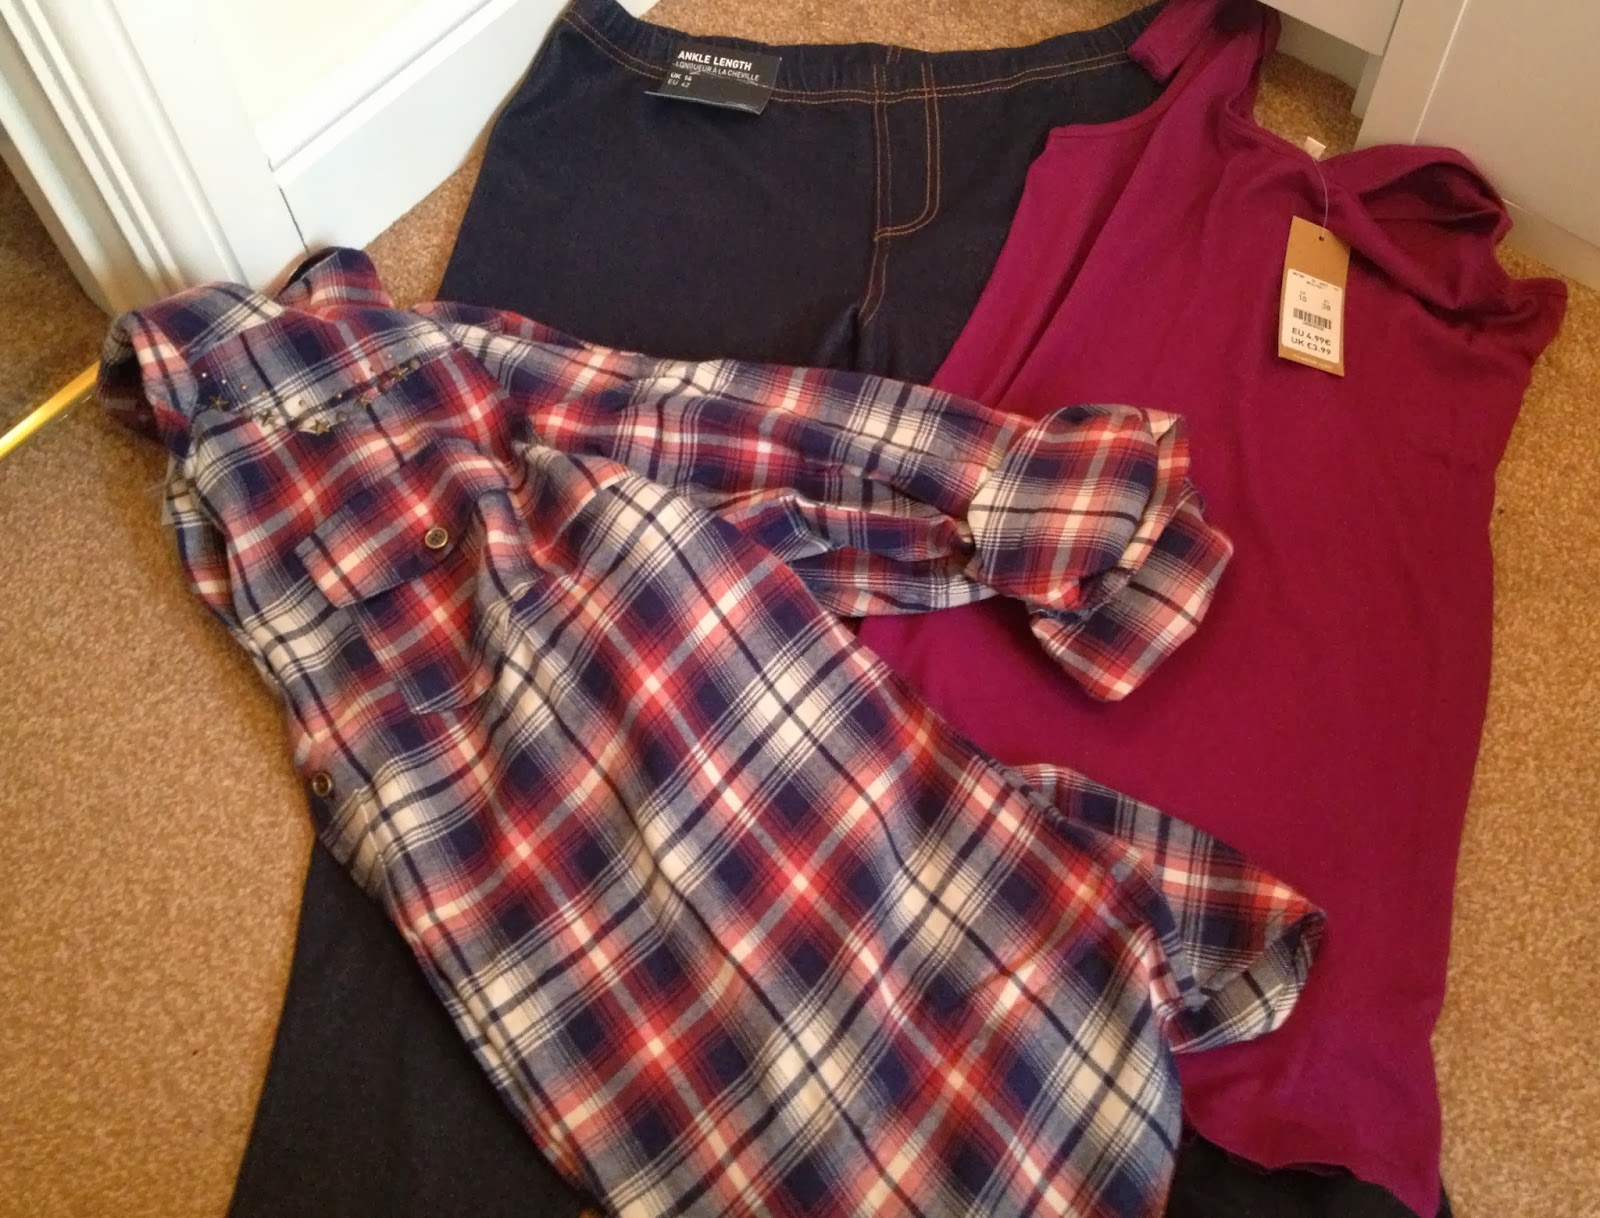 clothes from newlook, jeggings, and t-shirt top, and checked shirt